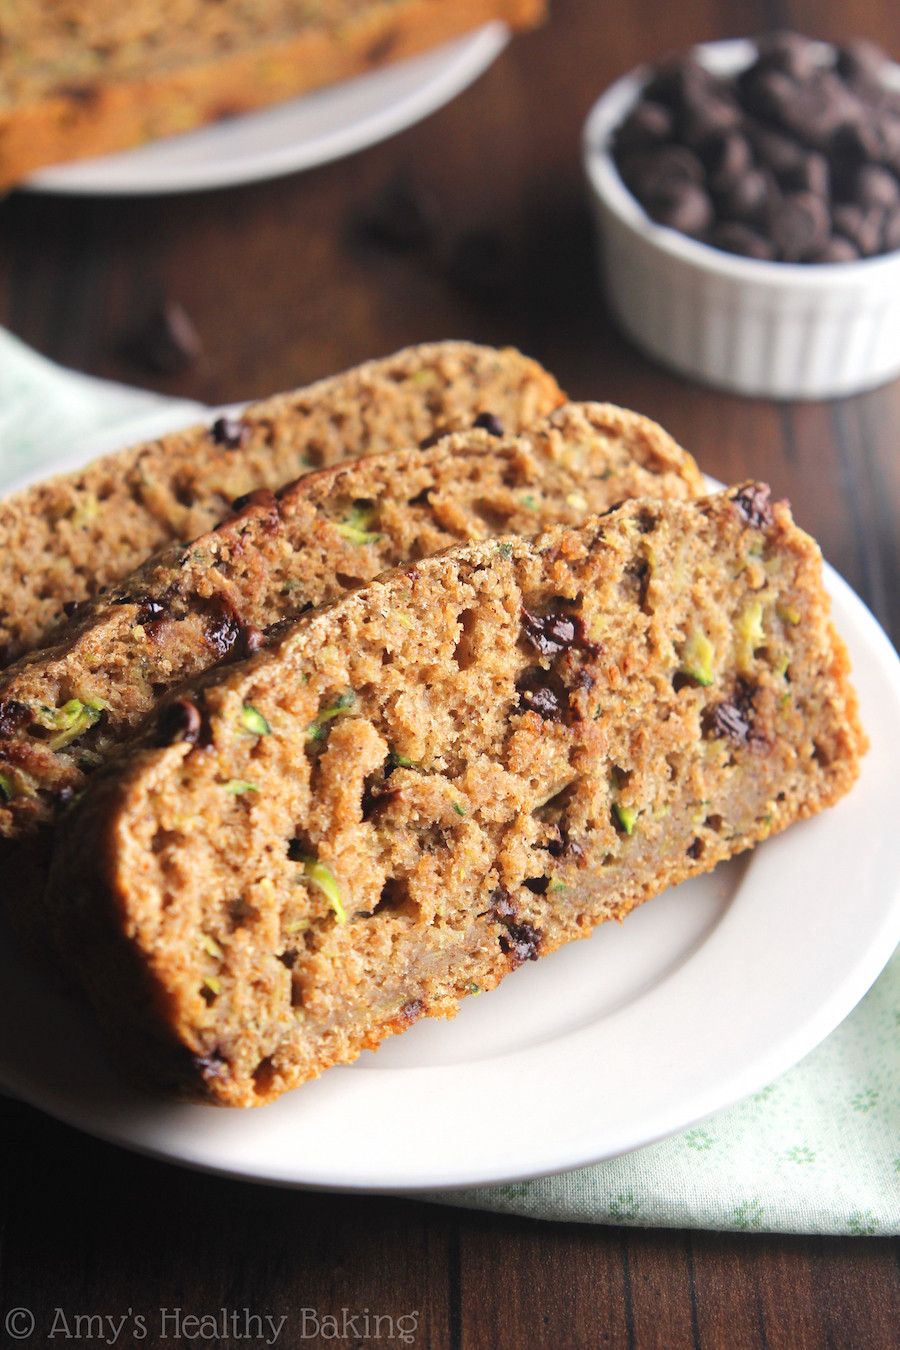 Healthy Chocolate Chip Zucchini Bread  Whole Wheat Chocolate Chip Zucchini Bread